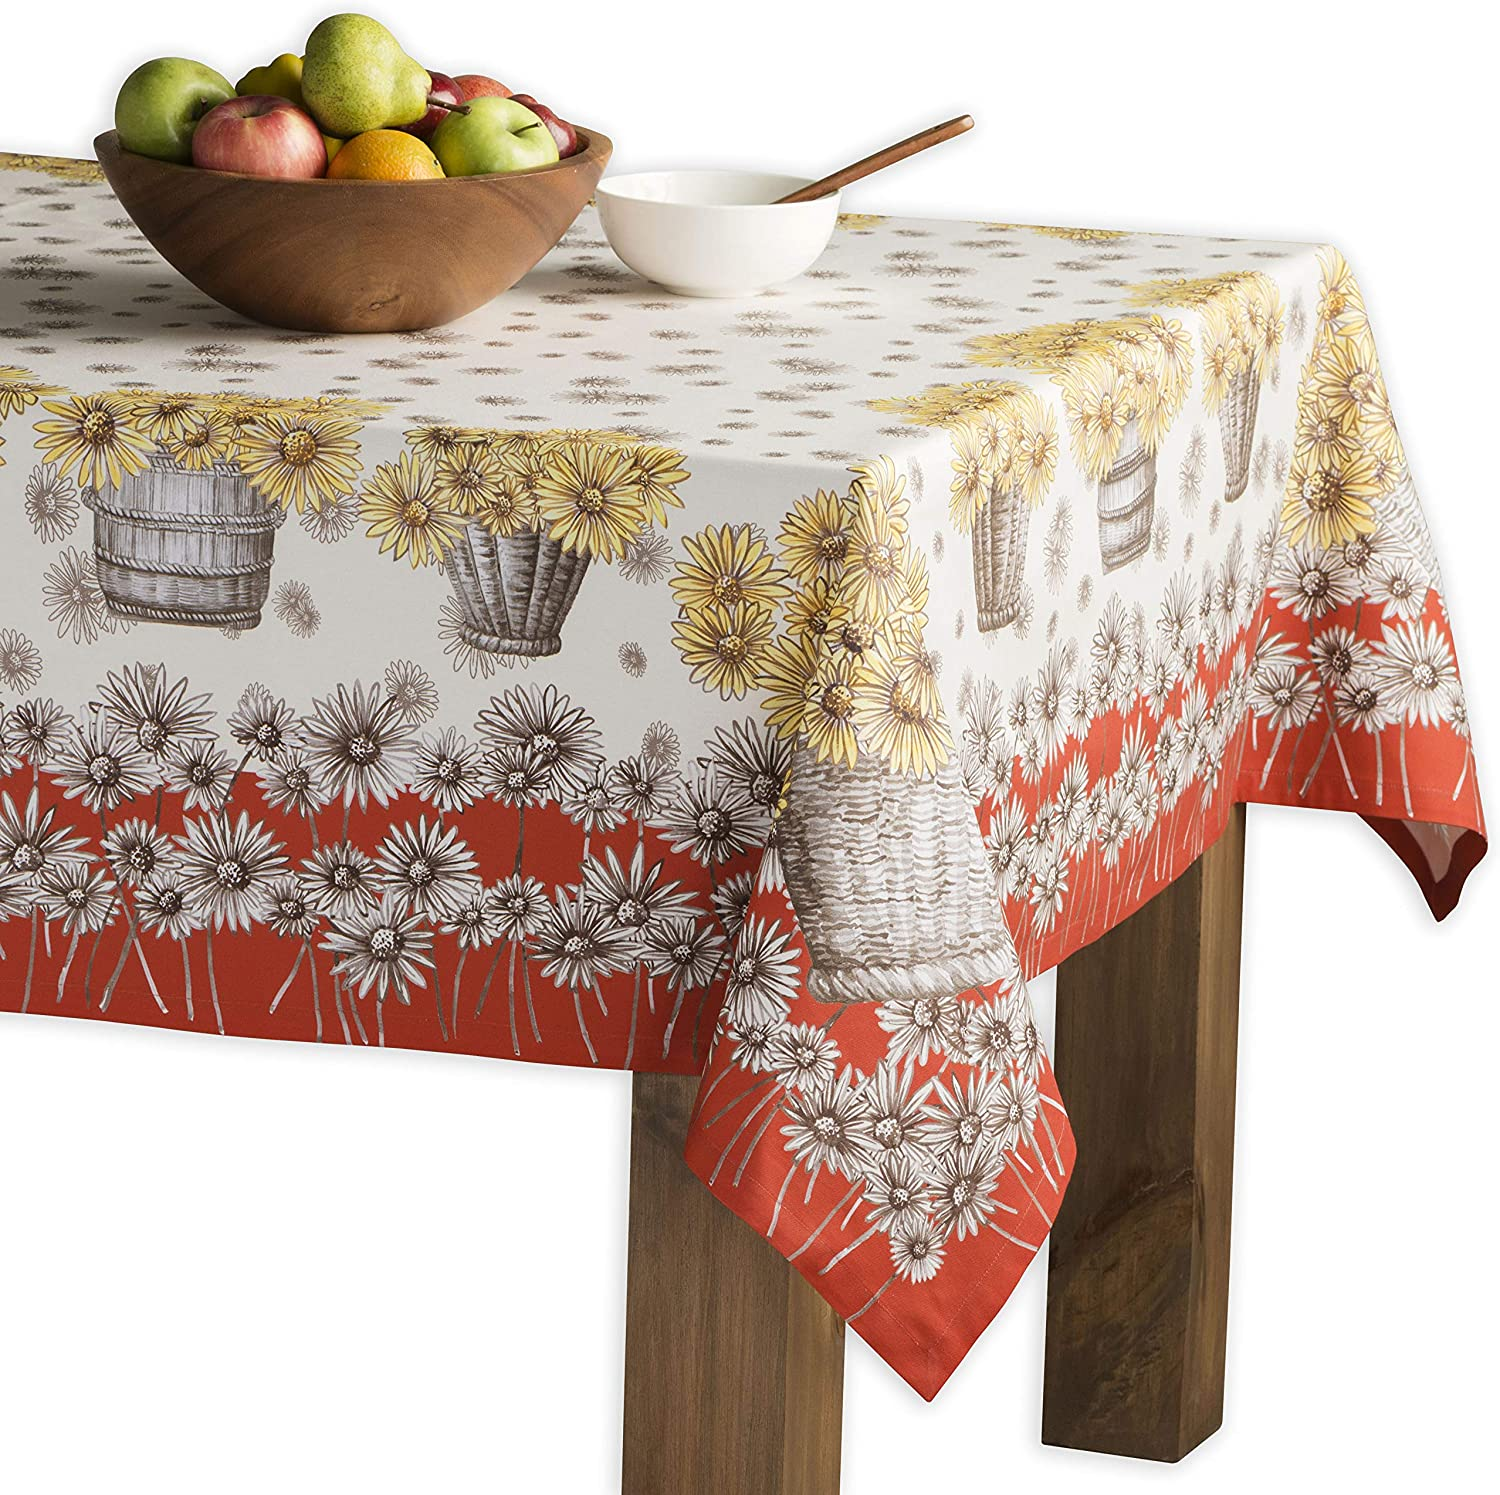 Maison d' Hermine Bagatelle 100% Cotton Tablecloth for Kitchen Dining   Tabletop   Decoration   Parties   Weddings   Thanksgiving/Christmas (Rectangle, 60 Inch by 90 Inch)